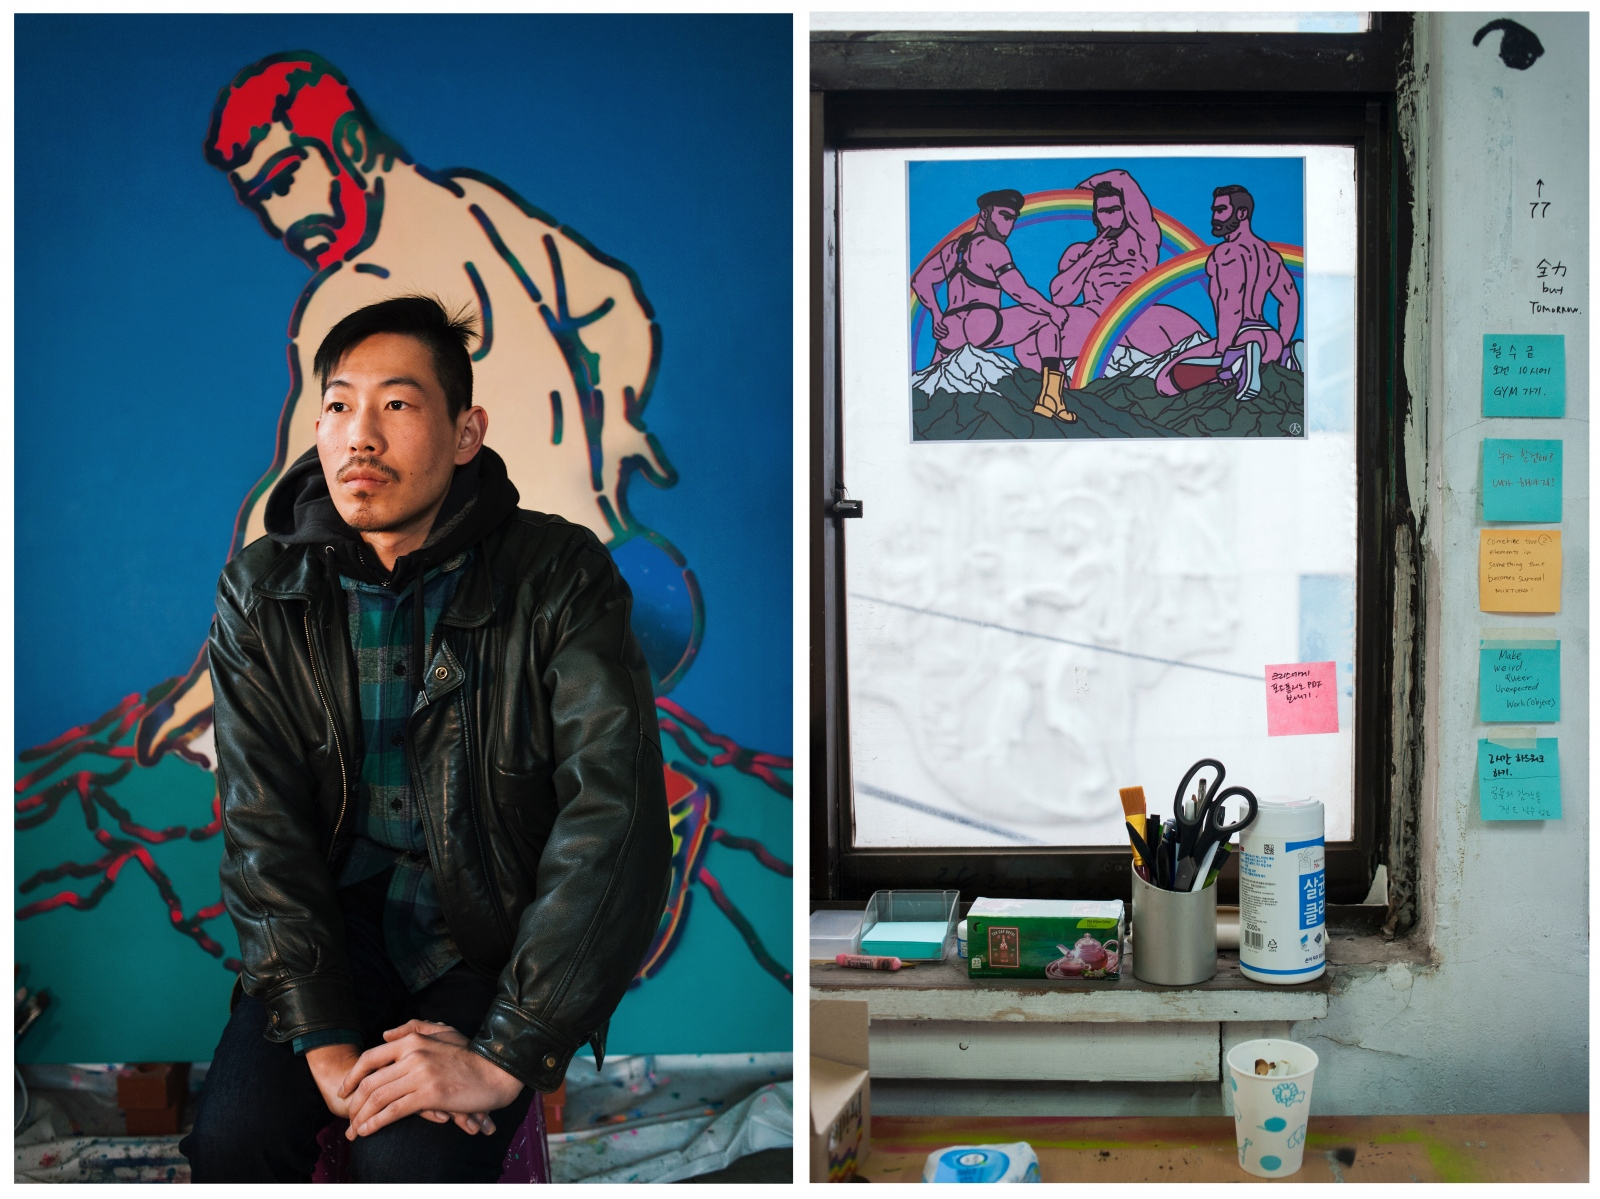 (Left) Jeon poses in front of one of his paintings featuring Cyclopes, big one-eyed monsters from Greek mythology, who were seen as wild savages and live on an uninhibited island far from Mt. Olympus. Jeon received his bachelor's in animation from Zokei University, Tokyo. In Jeon's interpretation, cyclopes resemble the Korean LGBTQ community in their isolation and the preconception others have toward them. (Right) Jeon's desk in his studio, Jongro, Seoul.